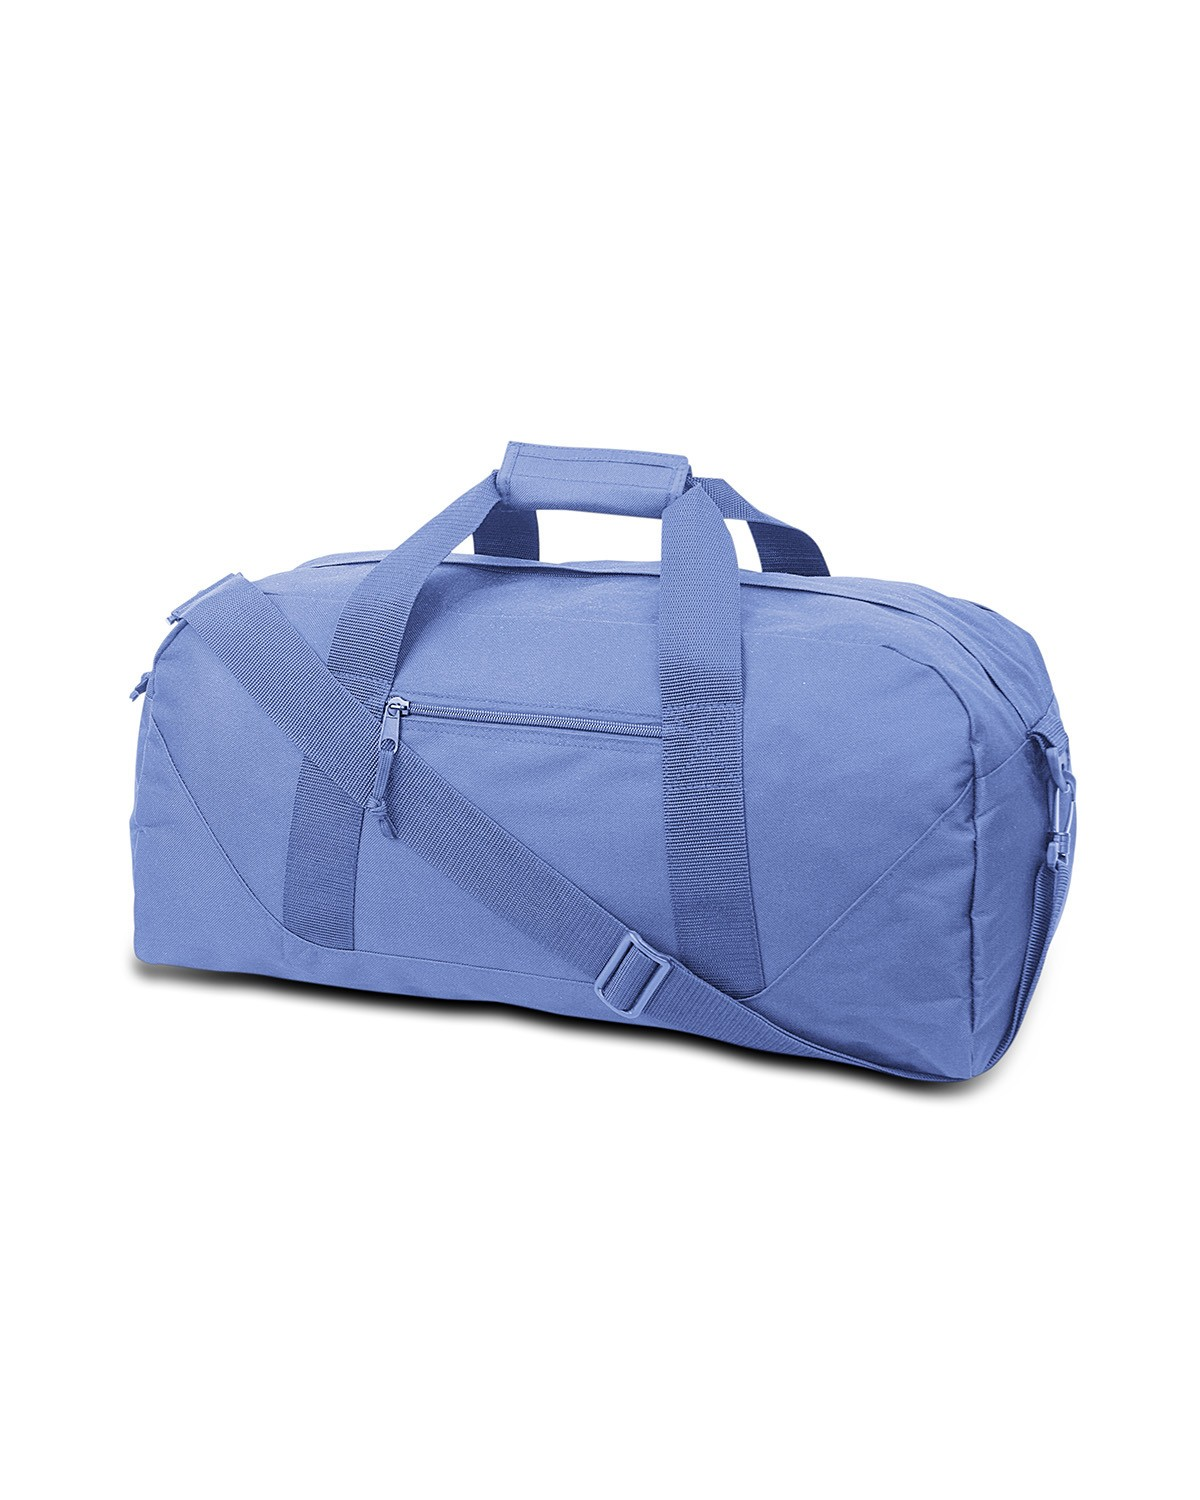 8806 Liberty Bags LIGHT BLUE